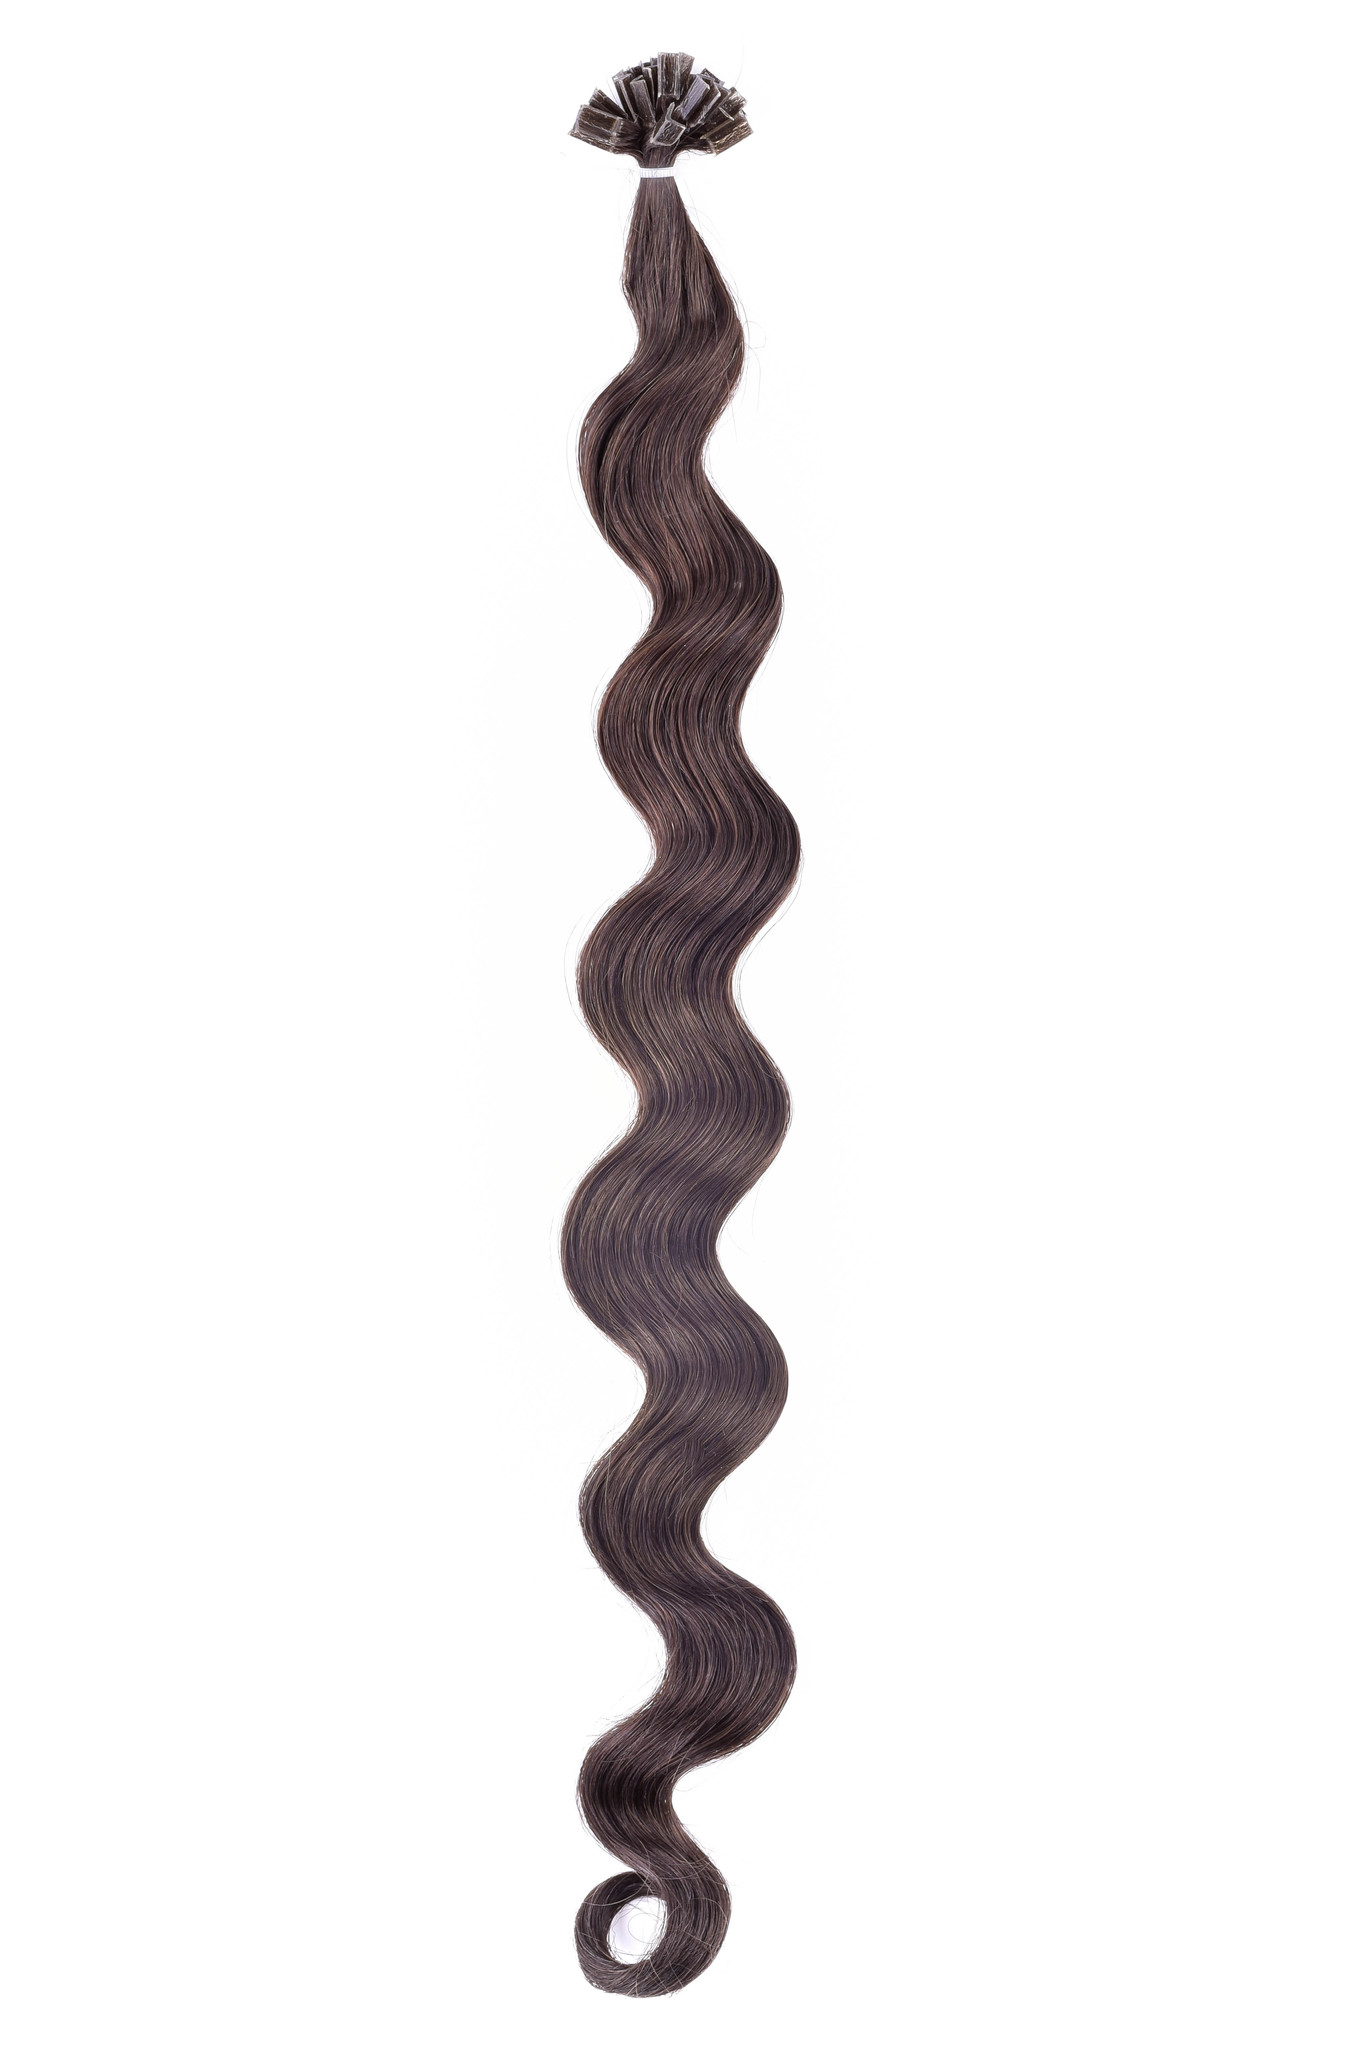 SilverFox Wax Extensions Loose Wave